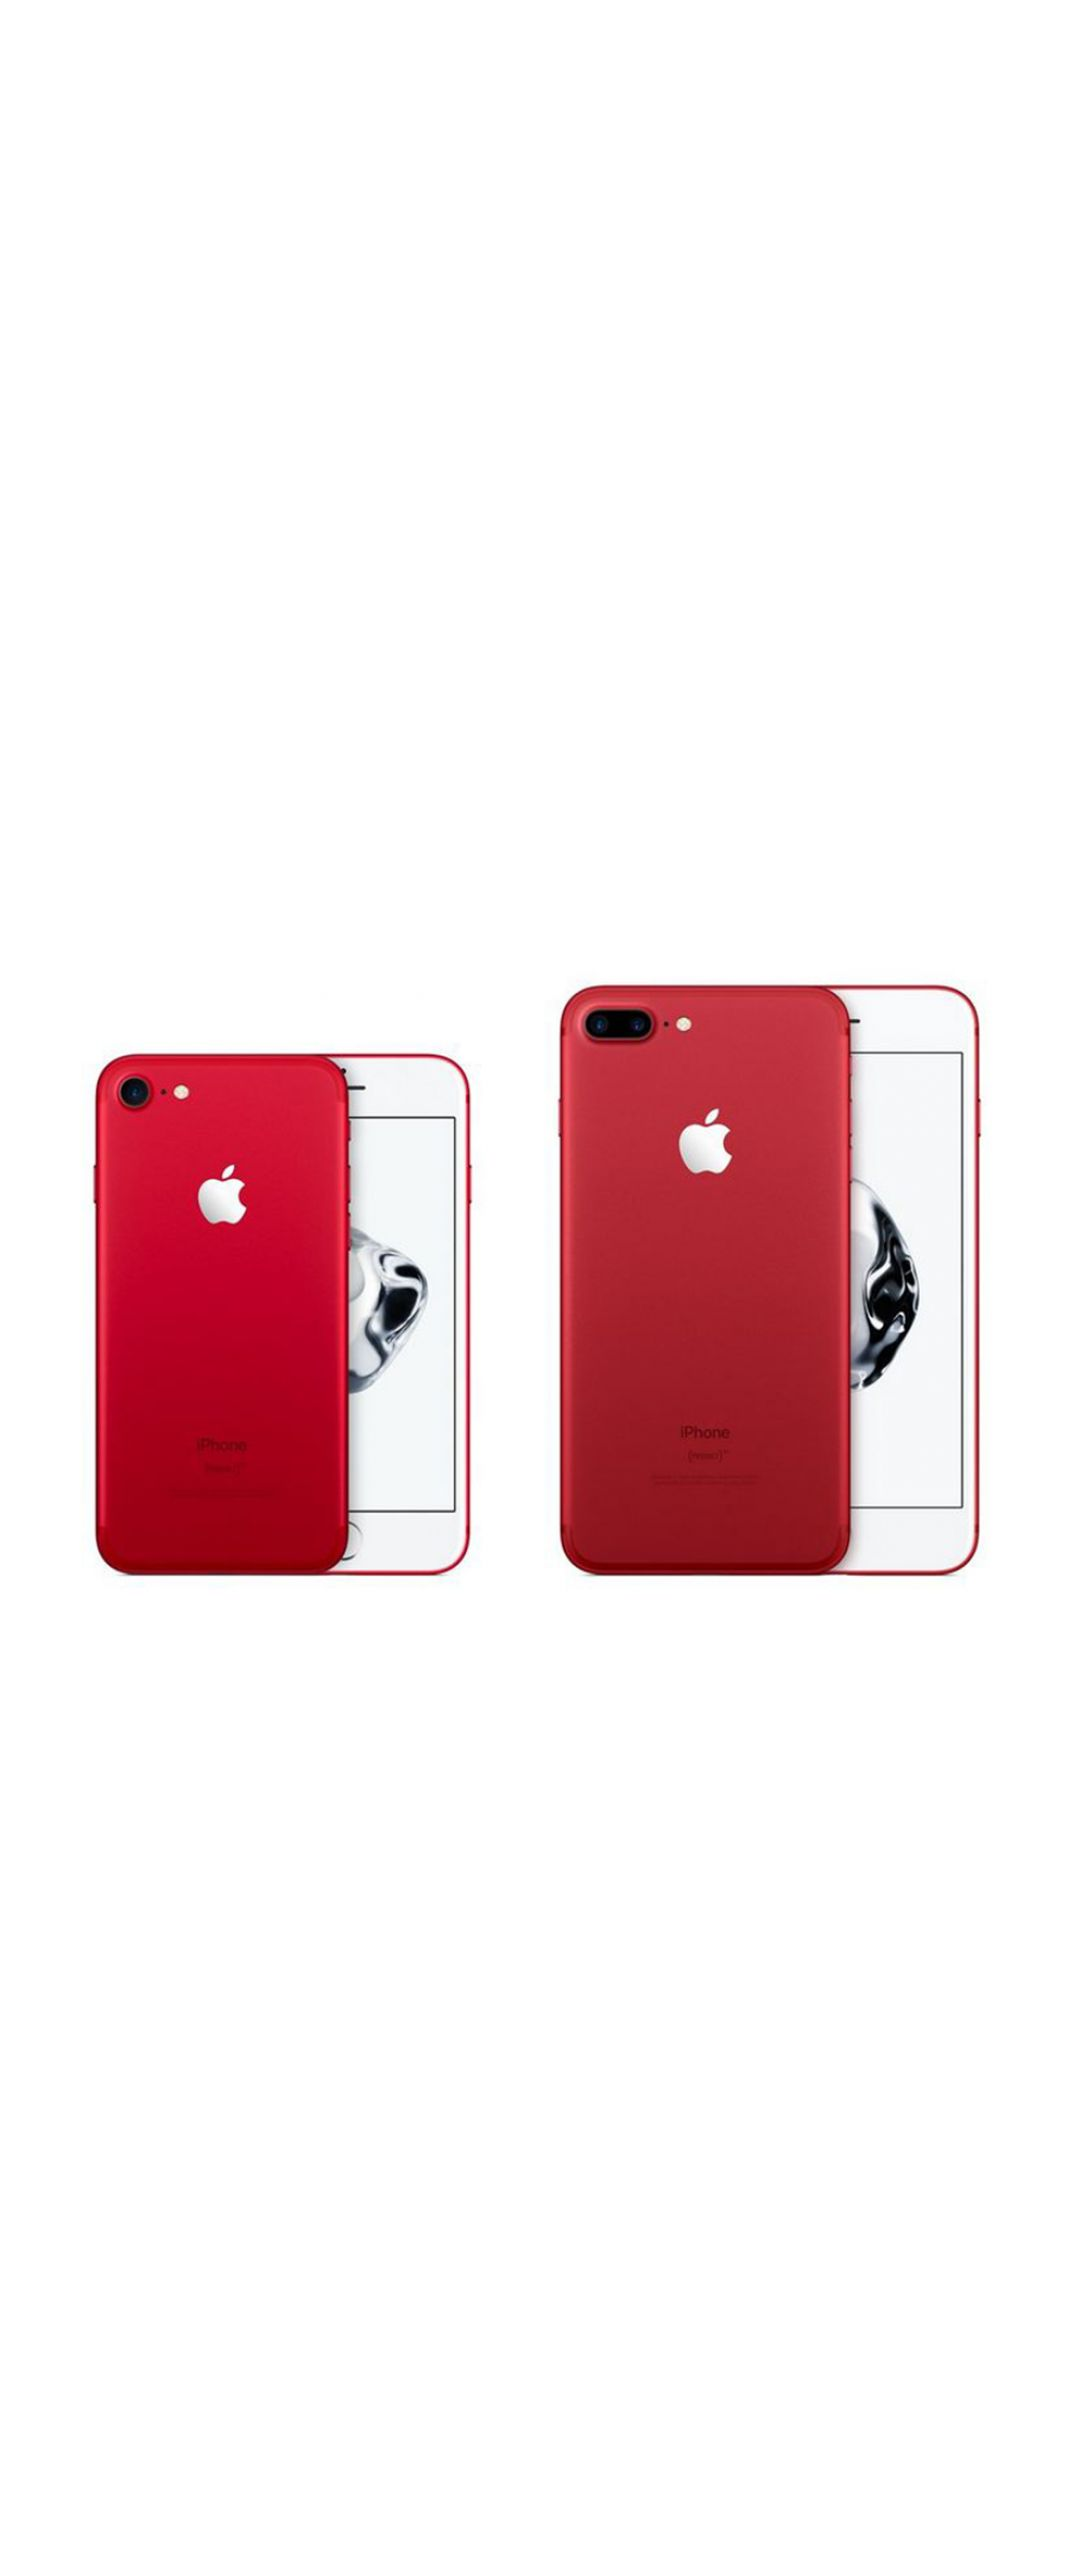 Apple anuncia el iPhone 7 en color rojo